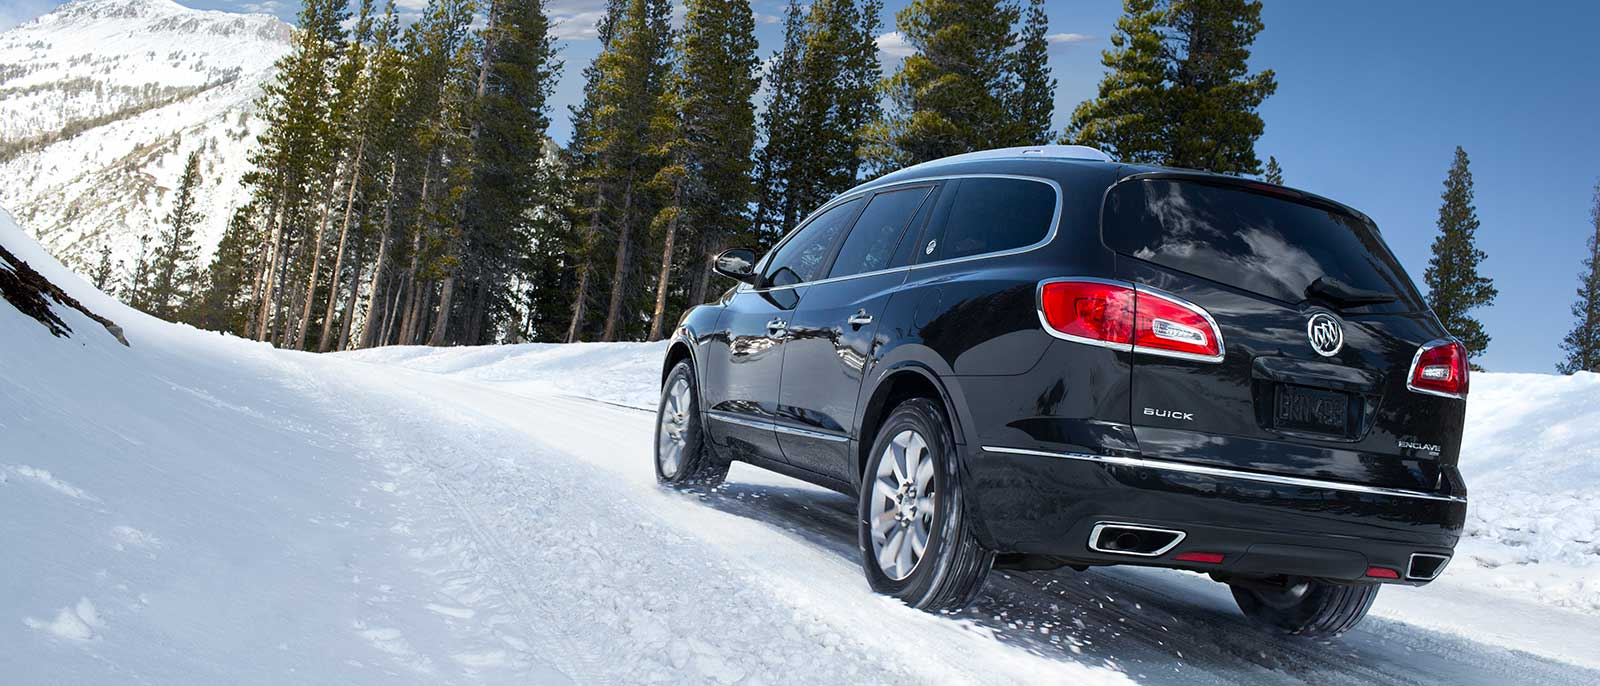 2017 Buick Enclave in the snow